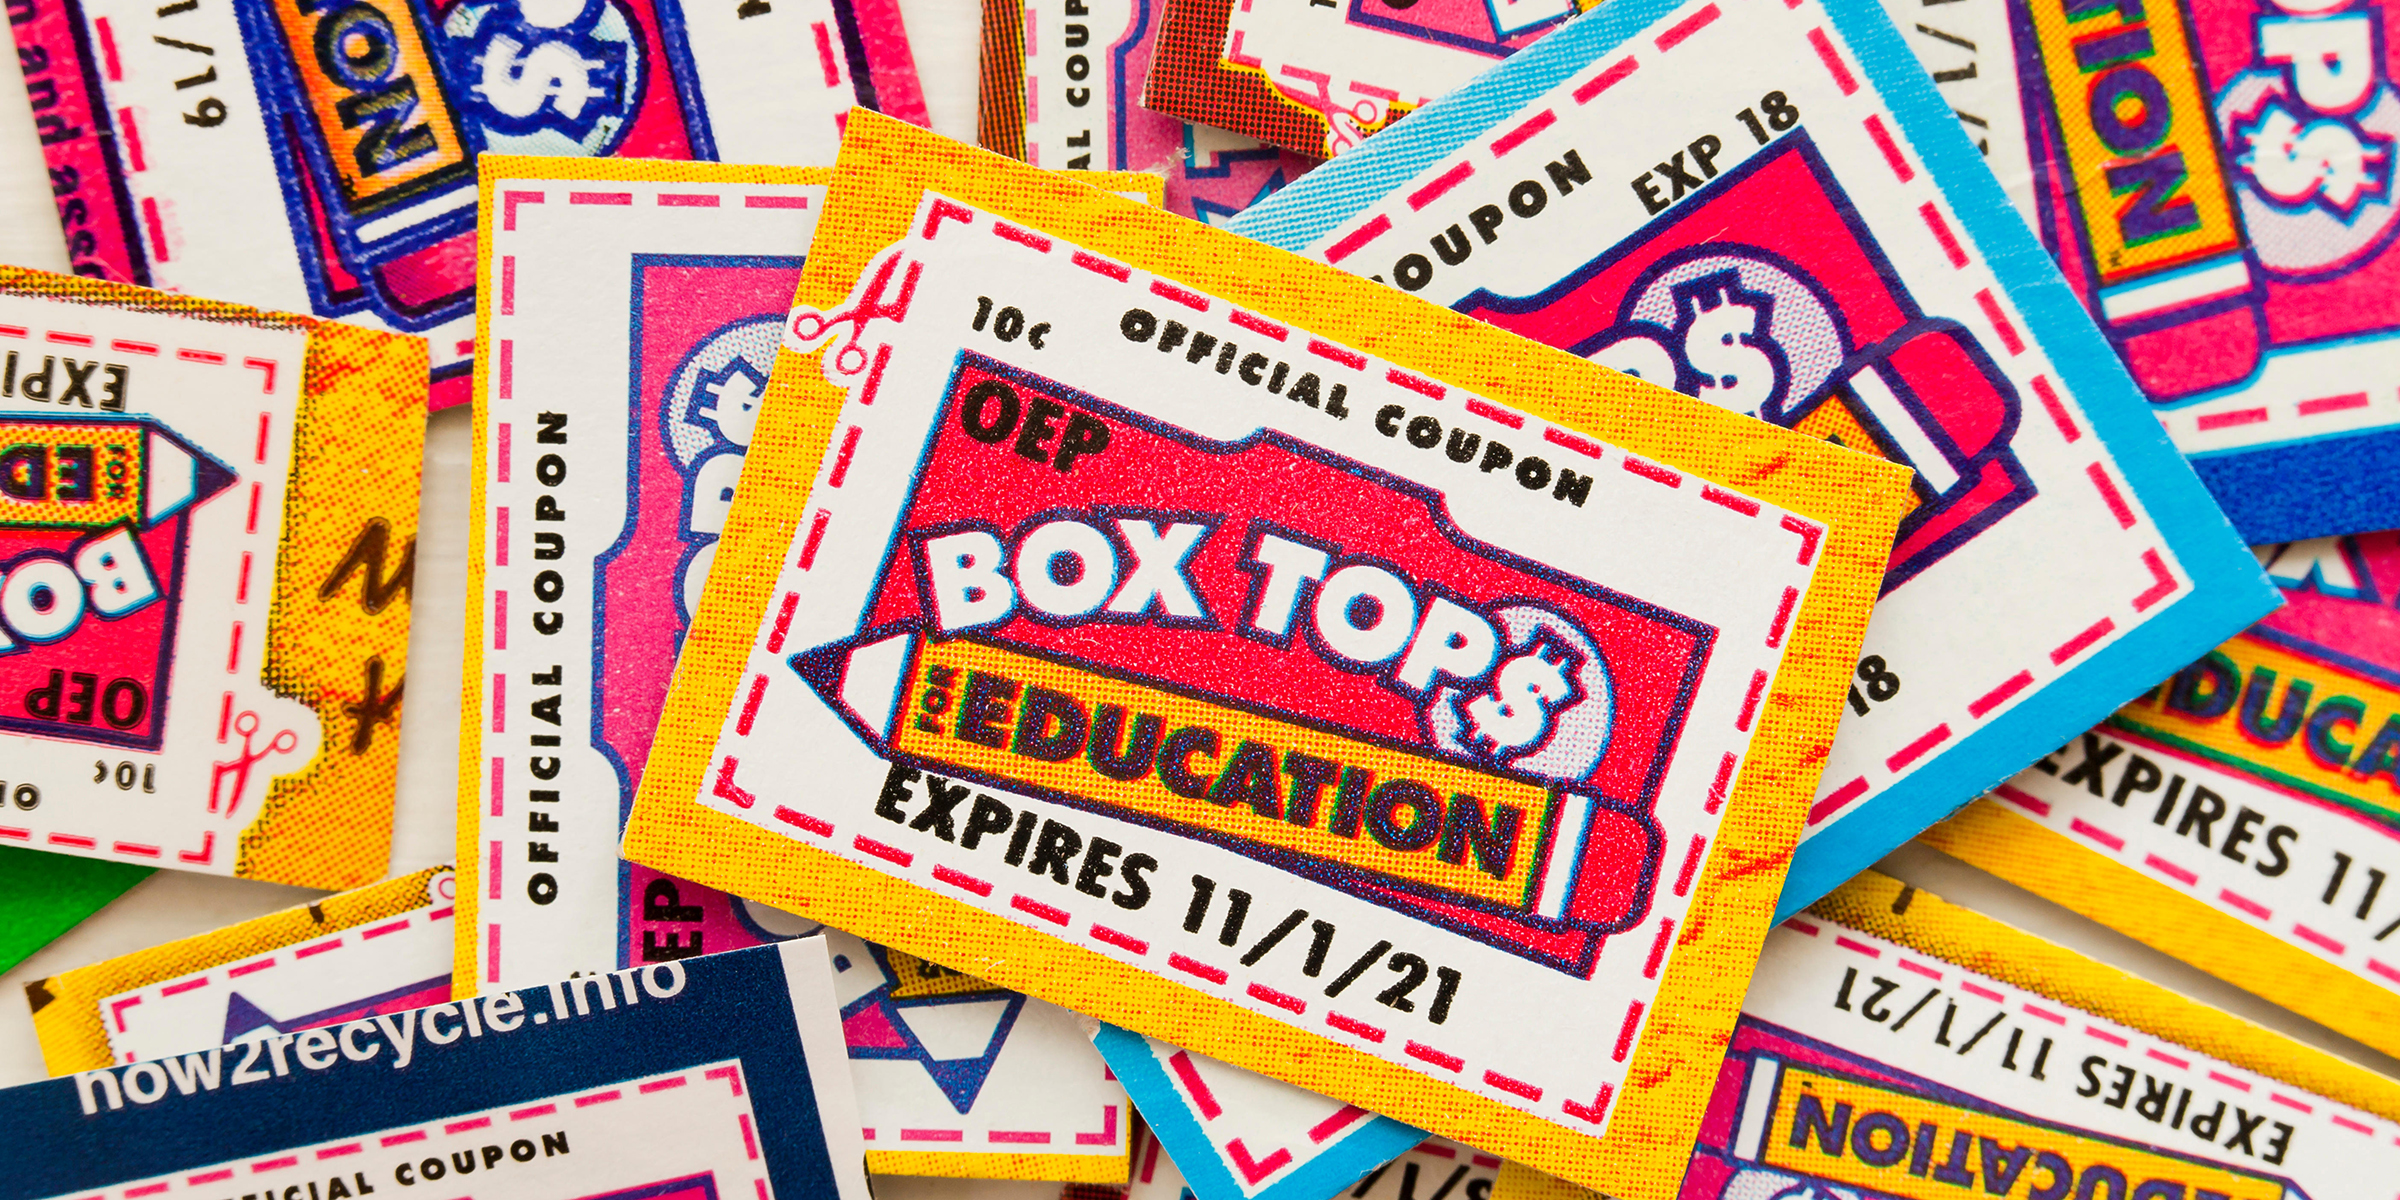 There's a whole new way to collect Box Tops for Education.